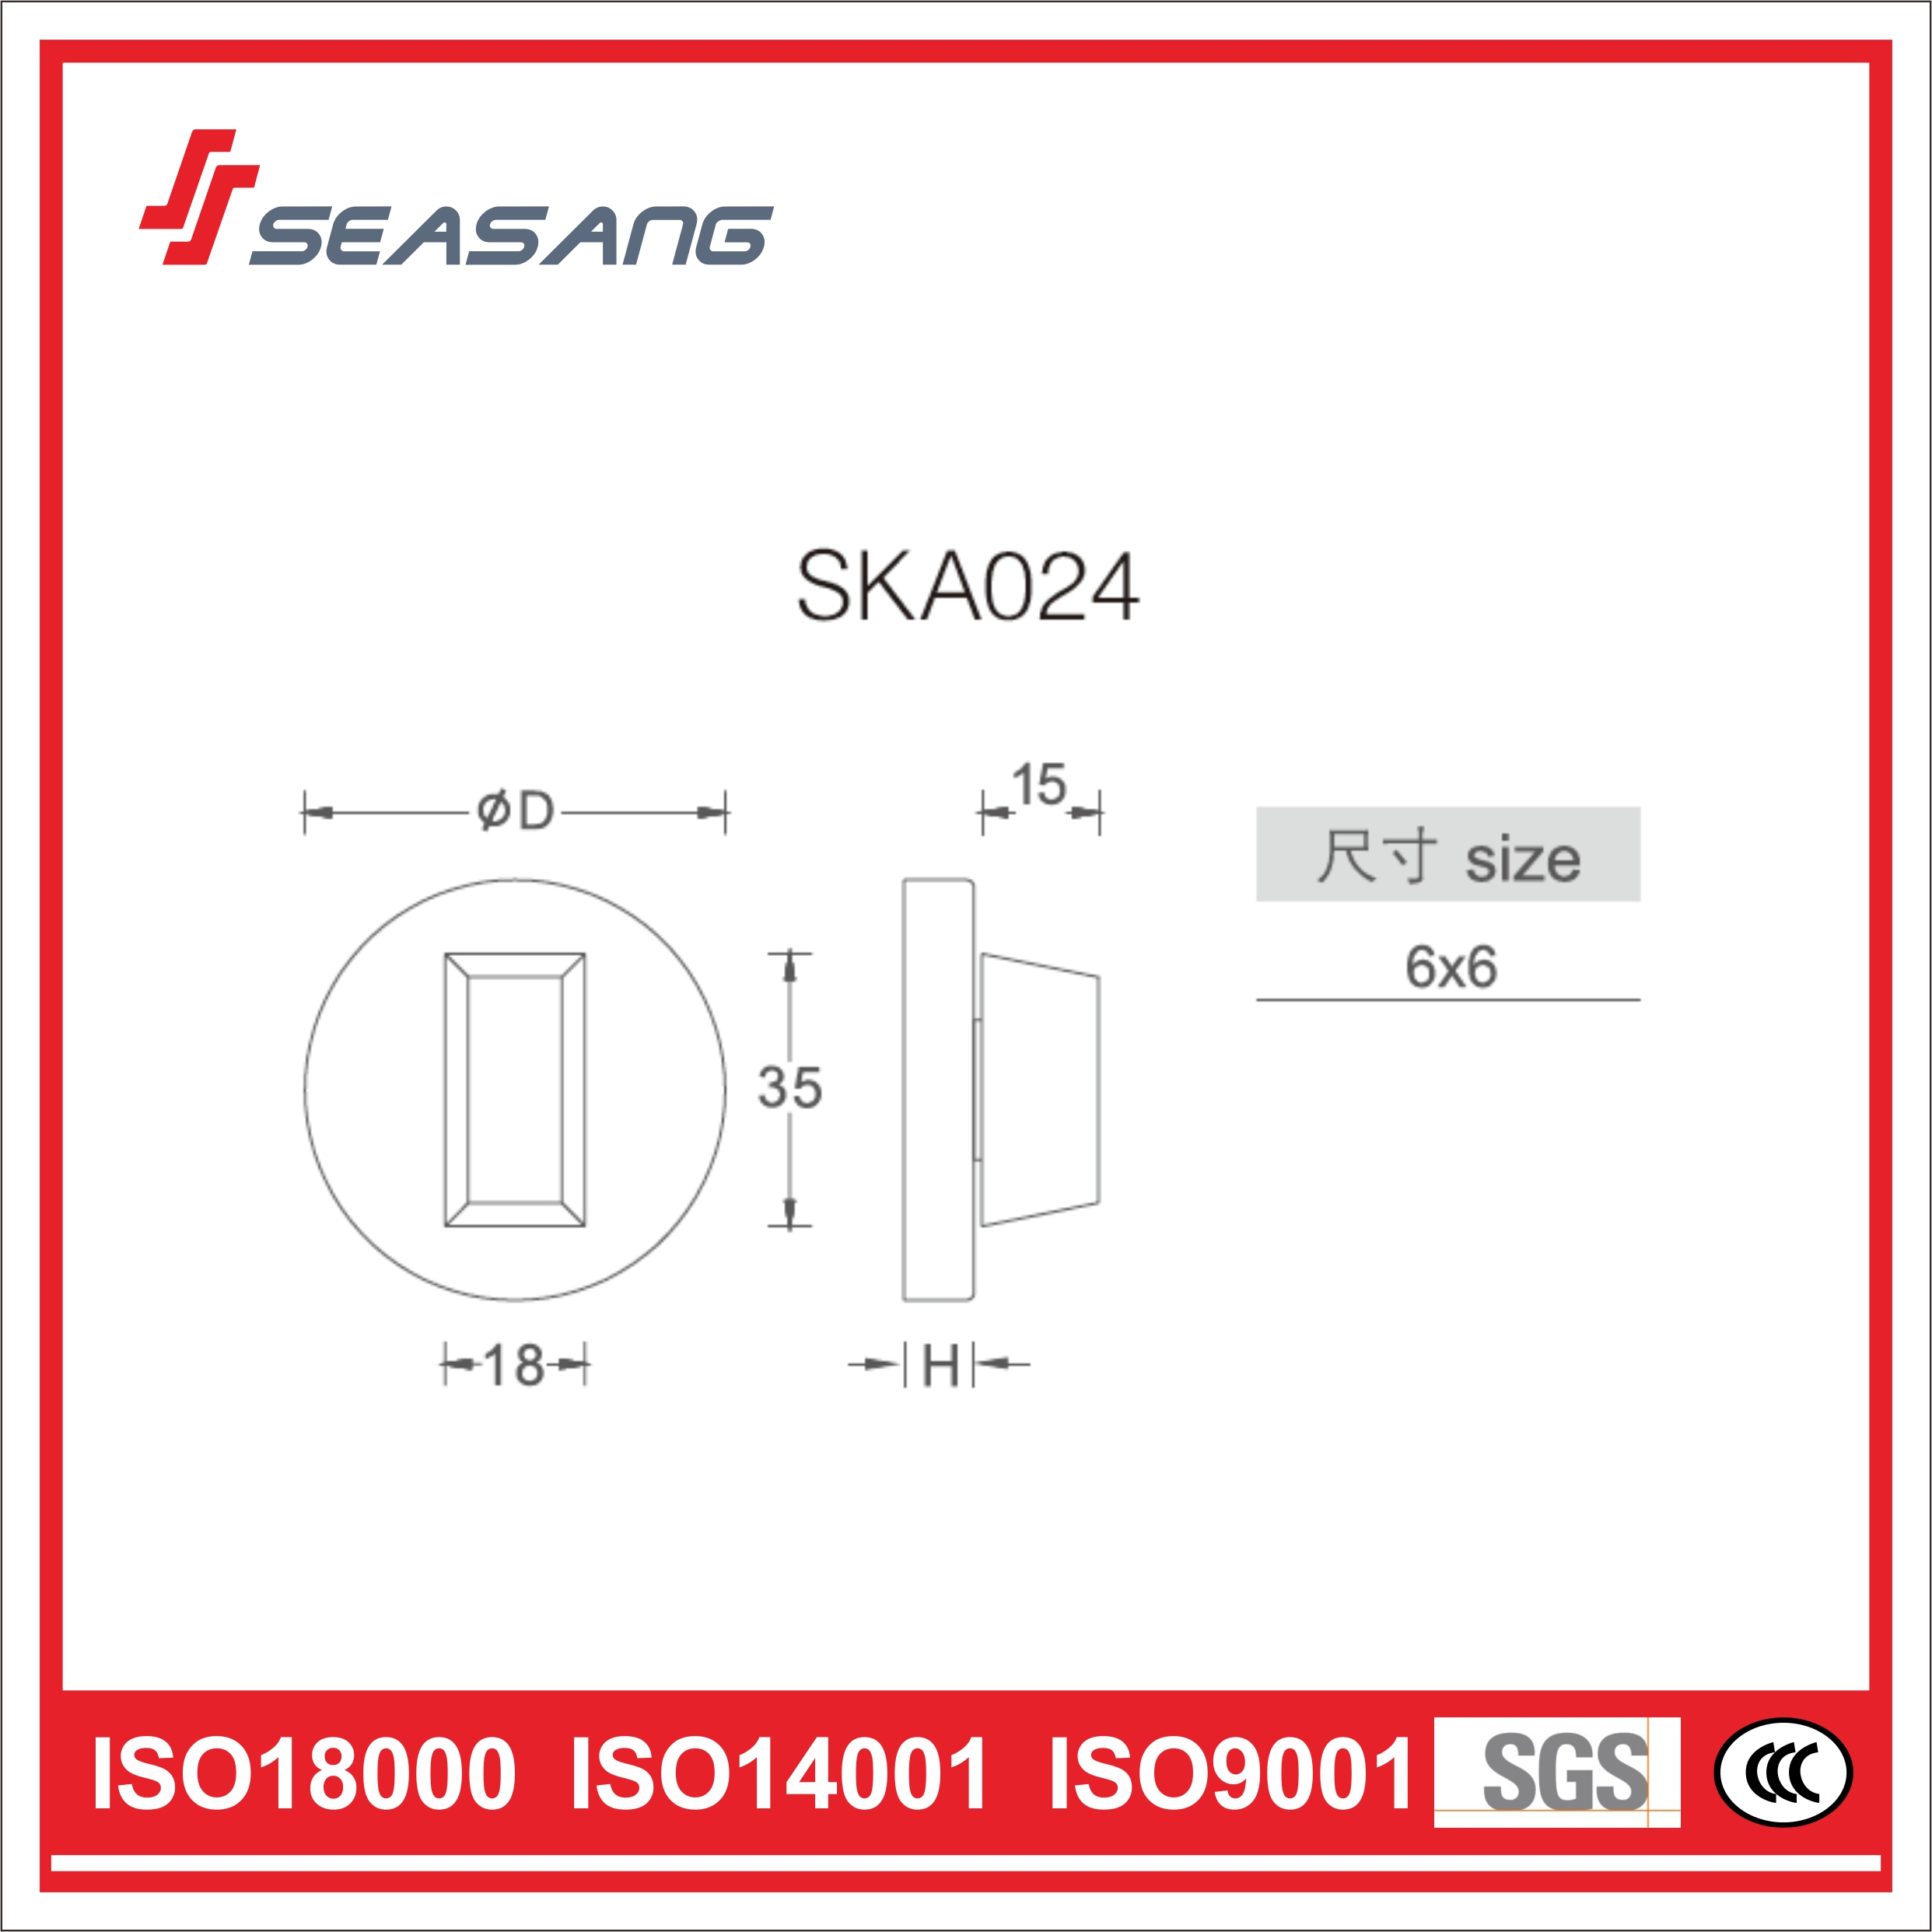 Stainless Steel Bathroom Handle Ska024